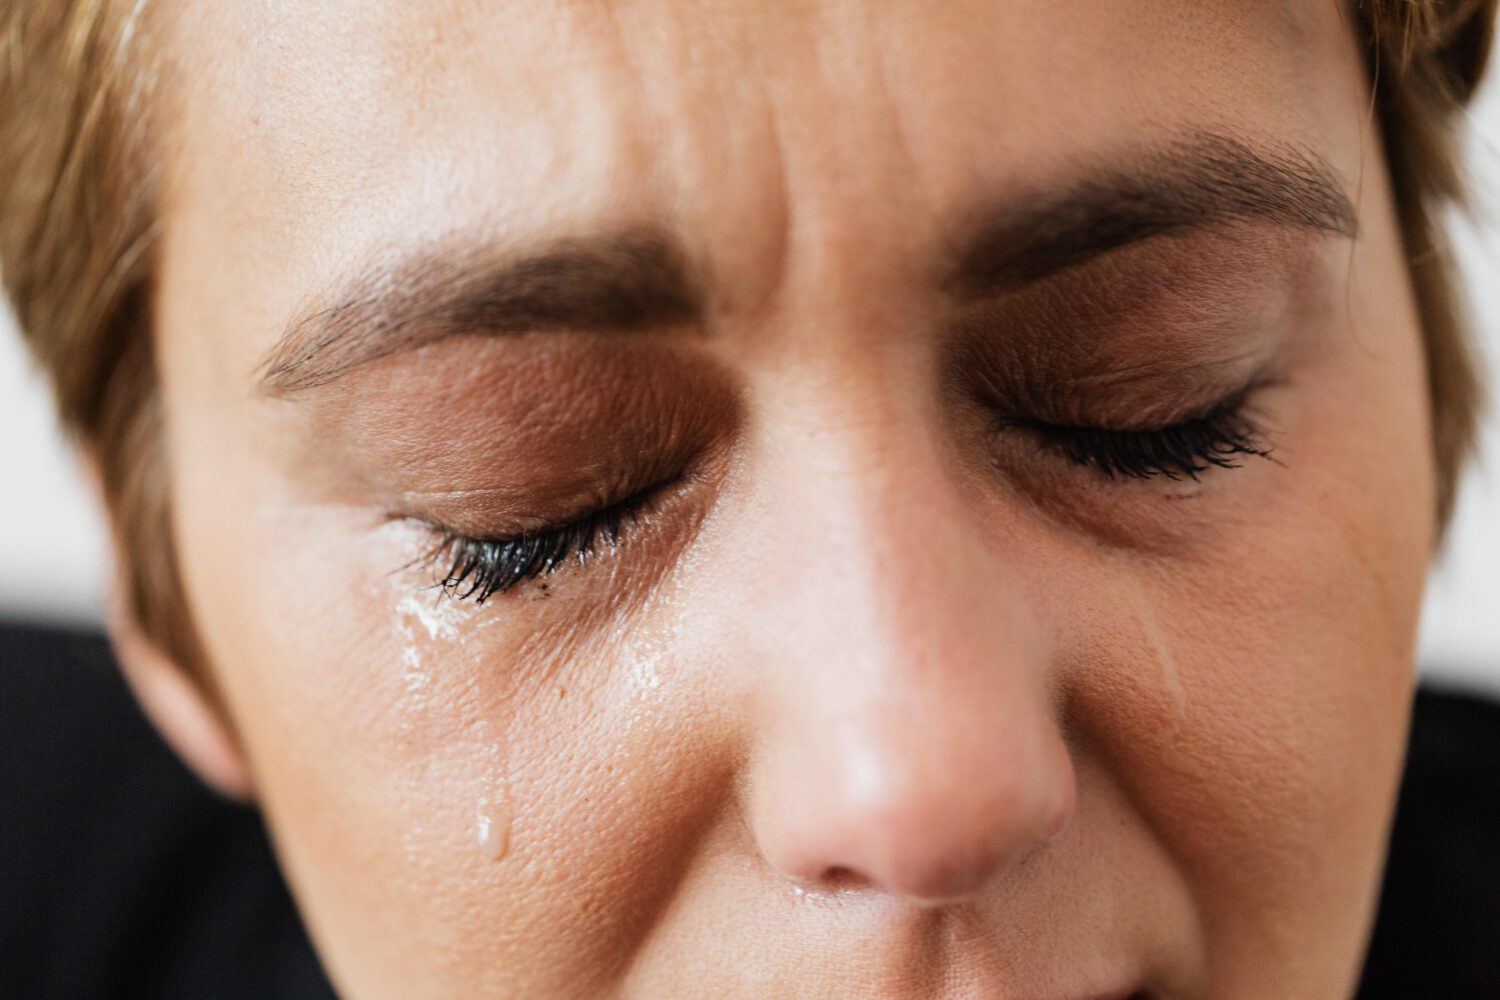 Tears on face of woman with agoraphobia